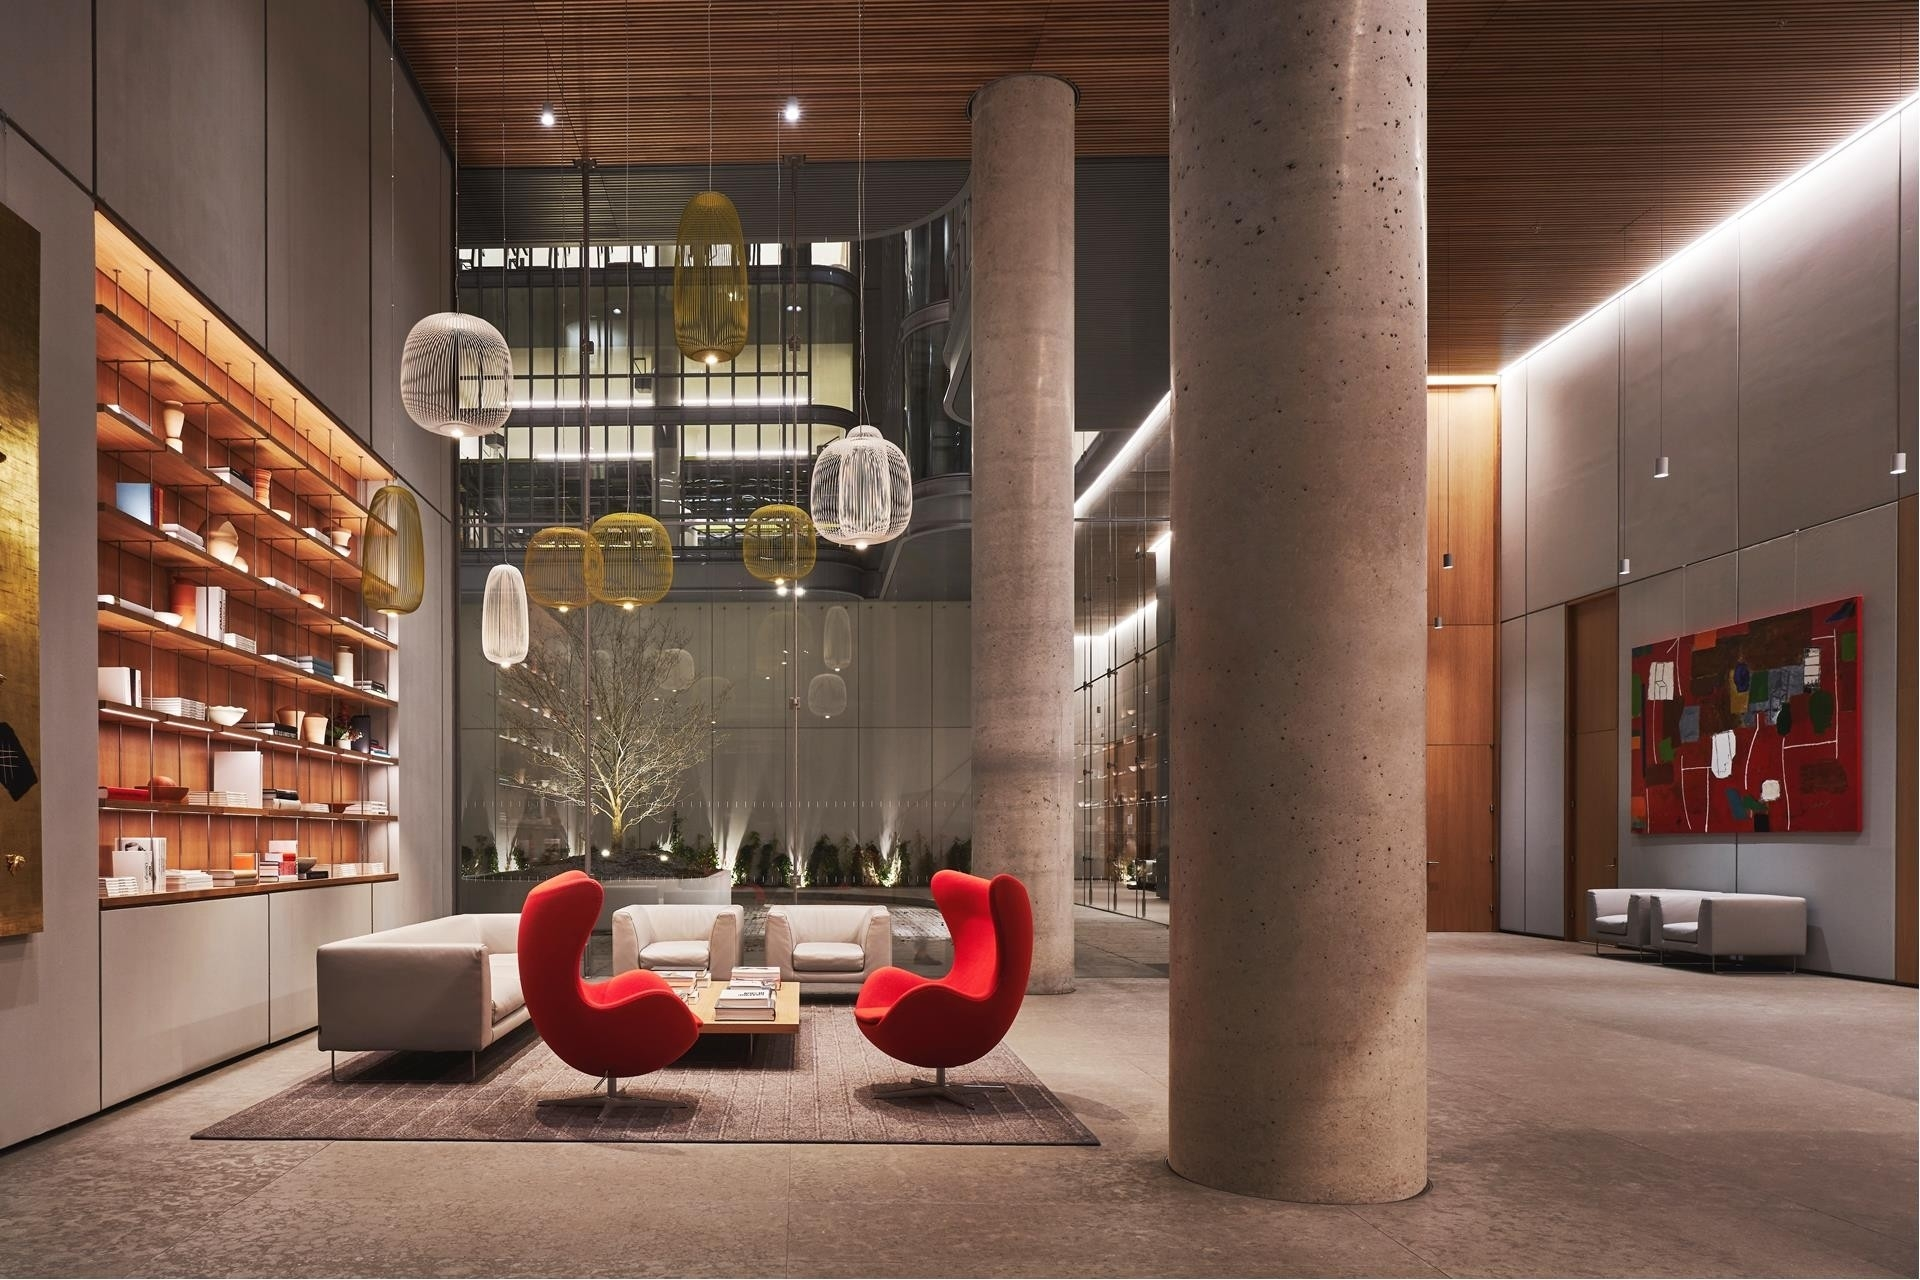 6. Condominiums for Sale at 565 Broome St, SOUTHPHB Hudson Square, New York, NY 10013